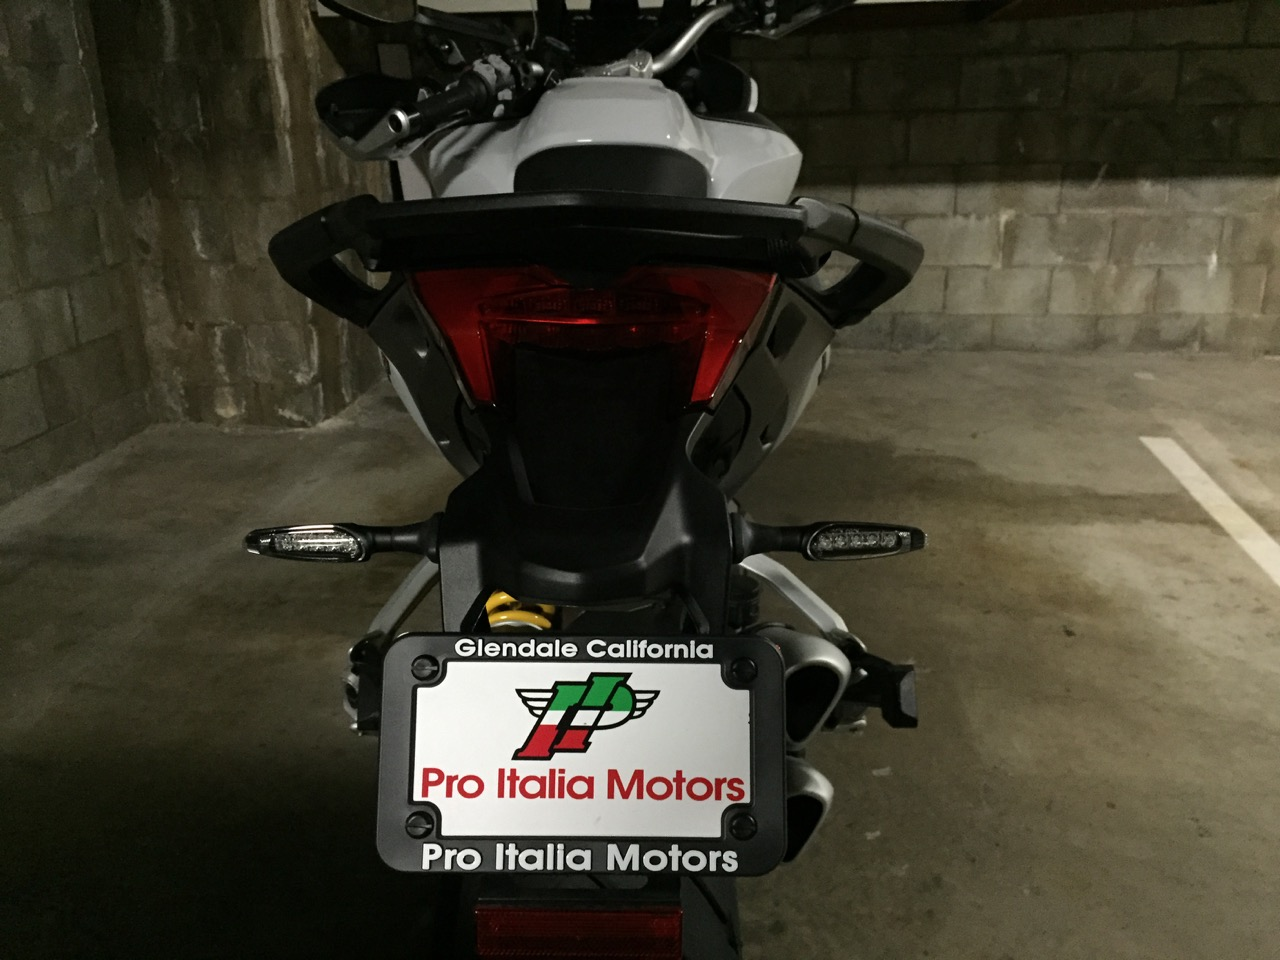 http://www.ducati.ms/forums/attachments/multistrada/569849d1435460995-have-you-installed-led-rear-indicators-2015-dvt-led-lights-7.jpg